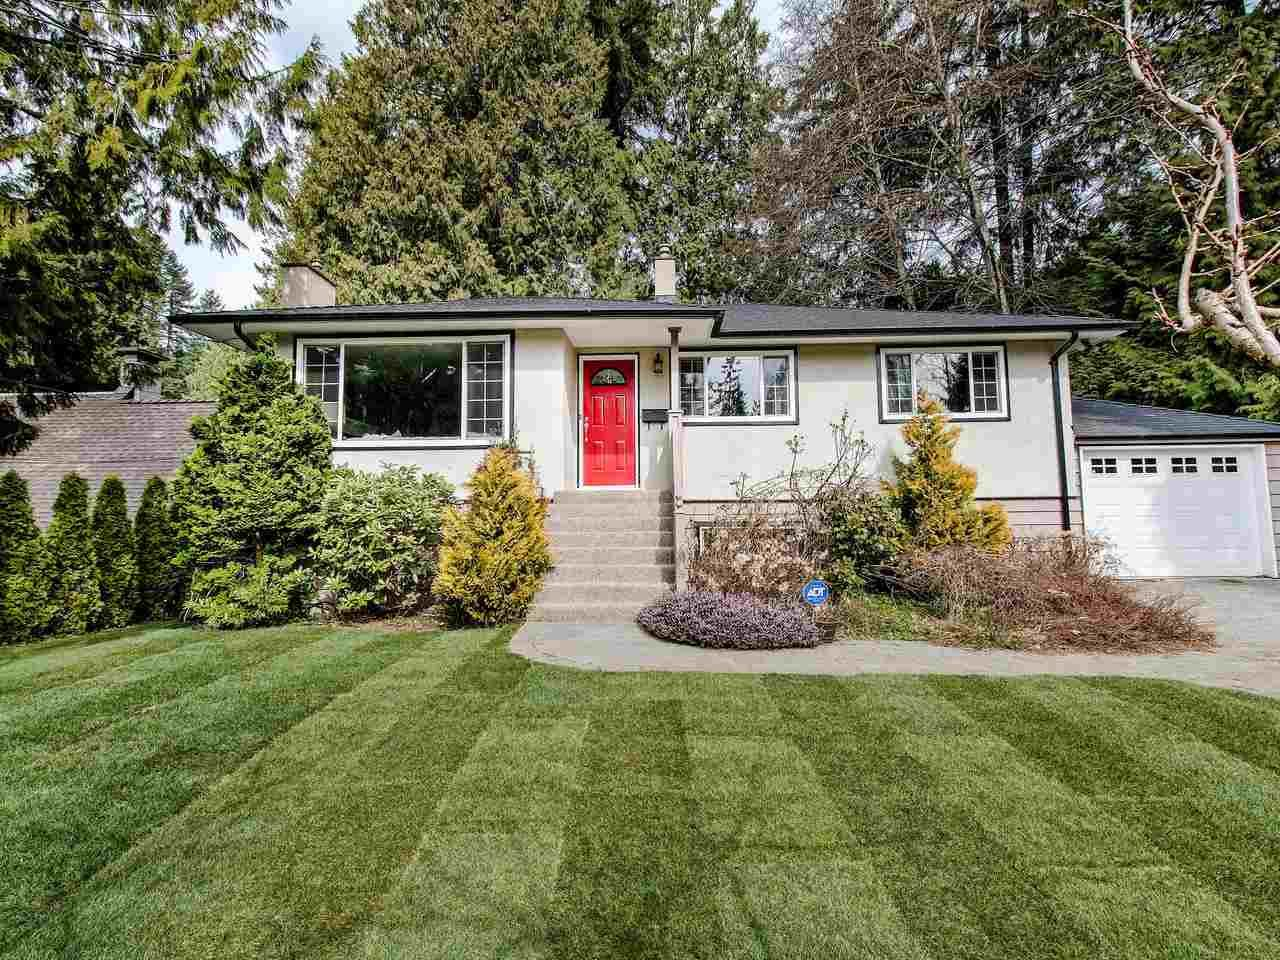 Main Photo: 742 WELLINGTON Drive in North Vancouver: Princess Park House for sale : MLS®# R2447326